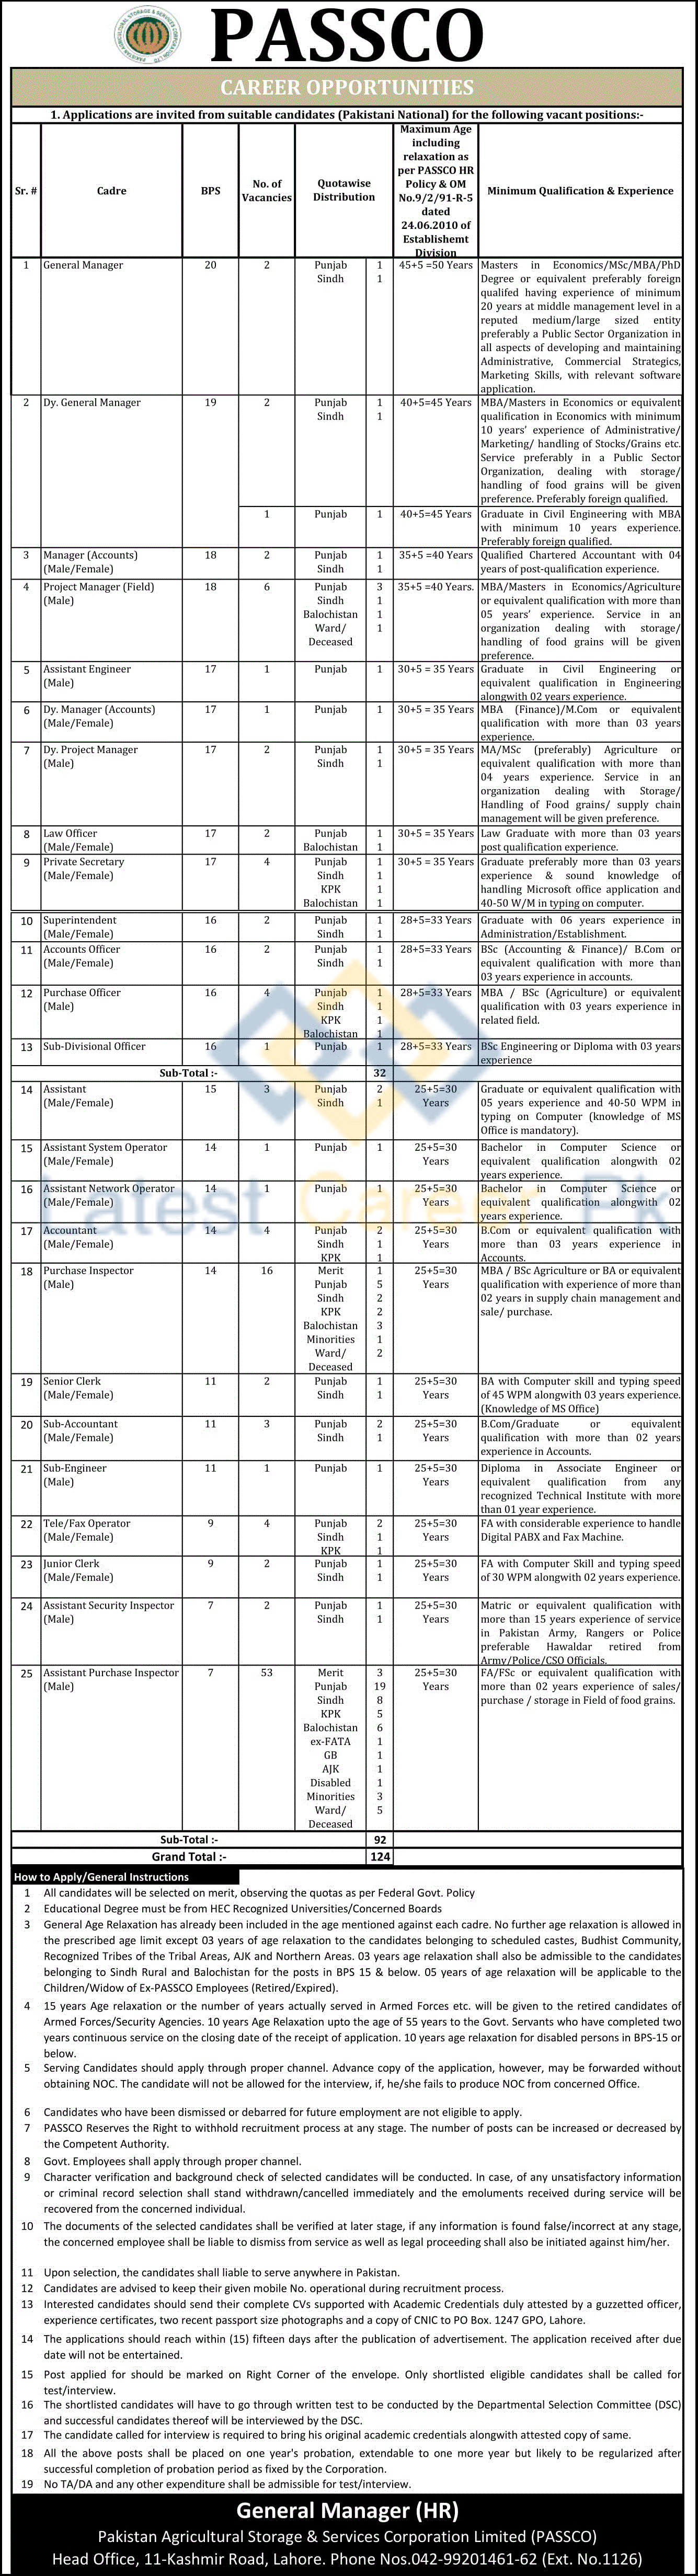 Pakistan-Agricultural-Storage-and-Services-Corporation-Limited-PASSCO-Lahore-Jobs-17-June-2020